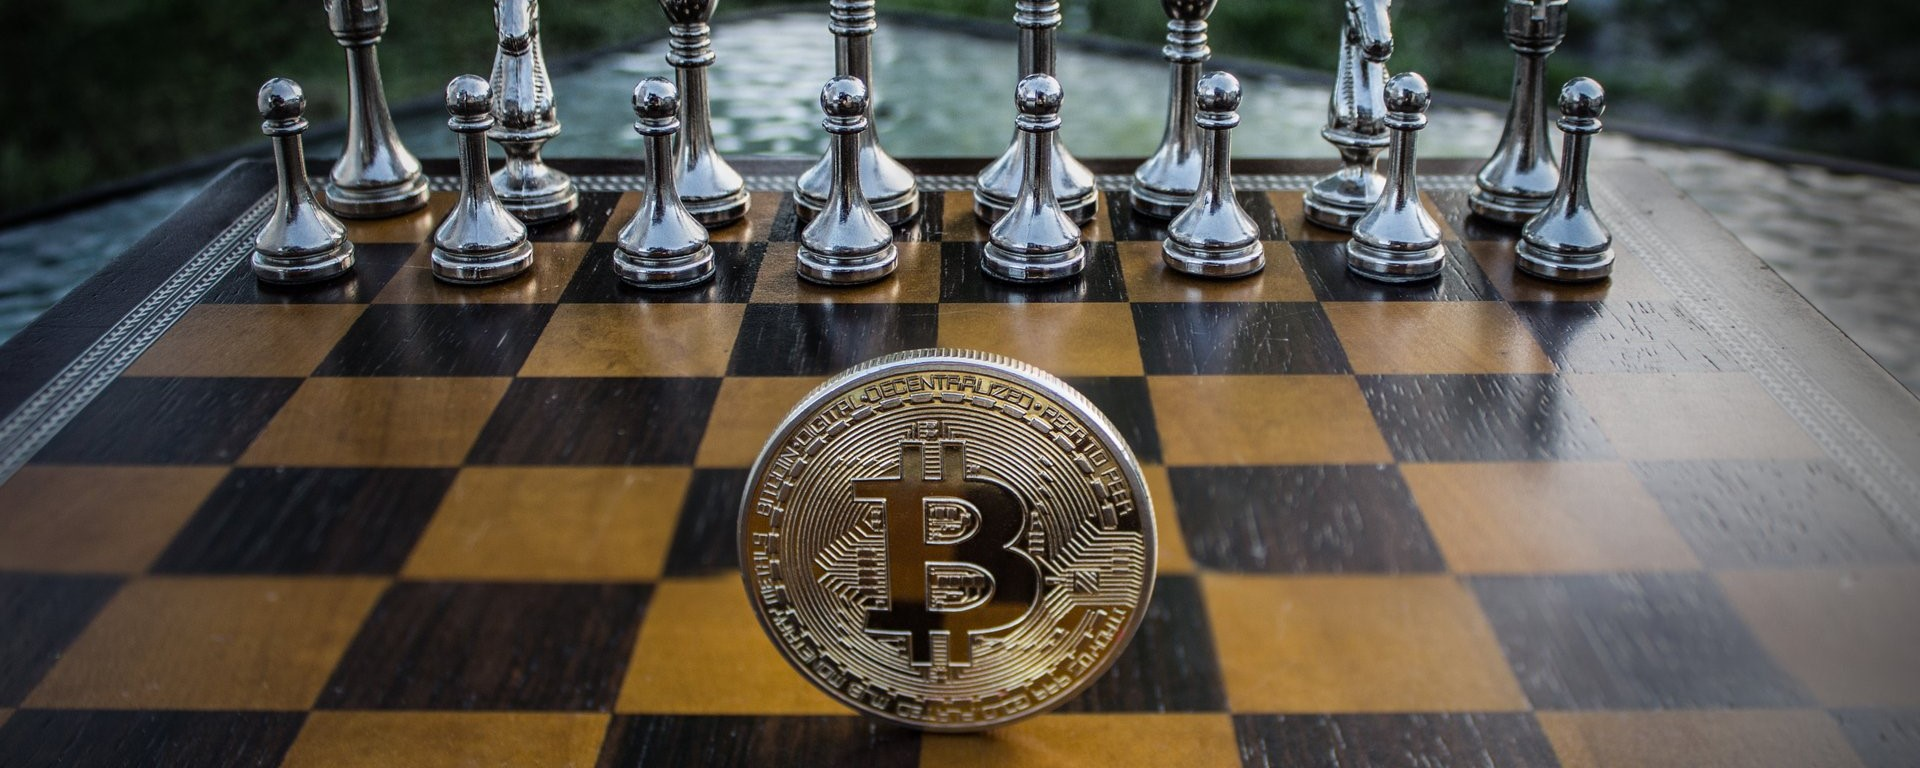 Bitcoin battles around $ 9,000, while altcoins start to recover 38